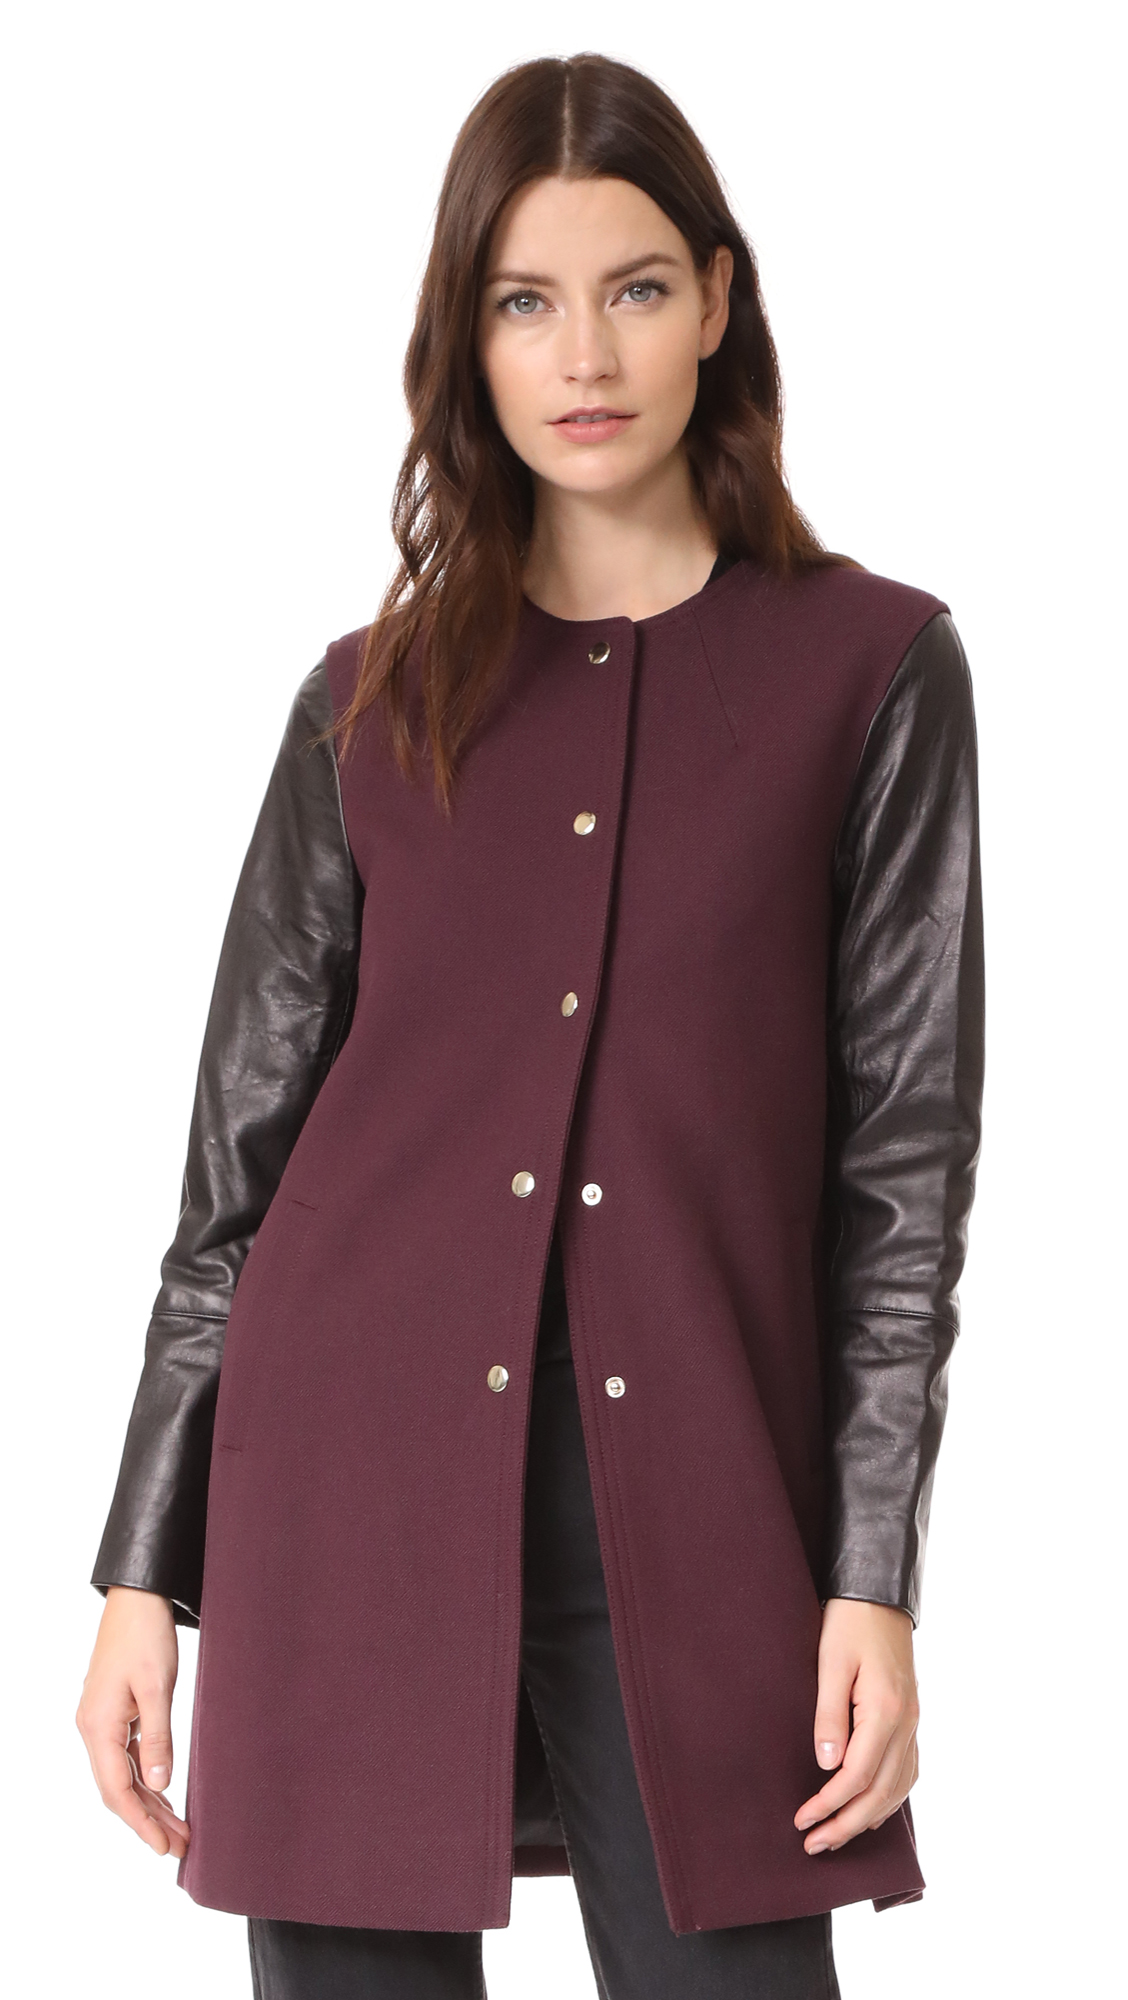 Club Monaco Wioletta Coat - Burgundy